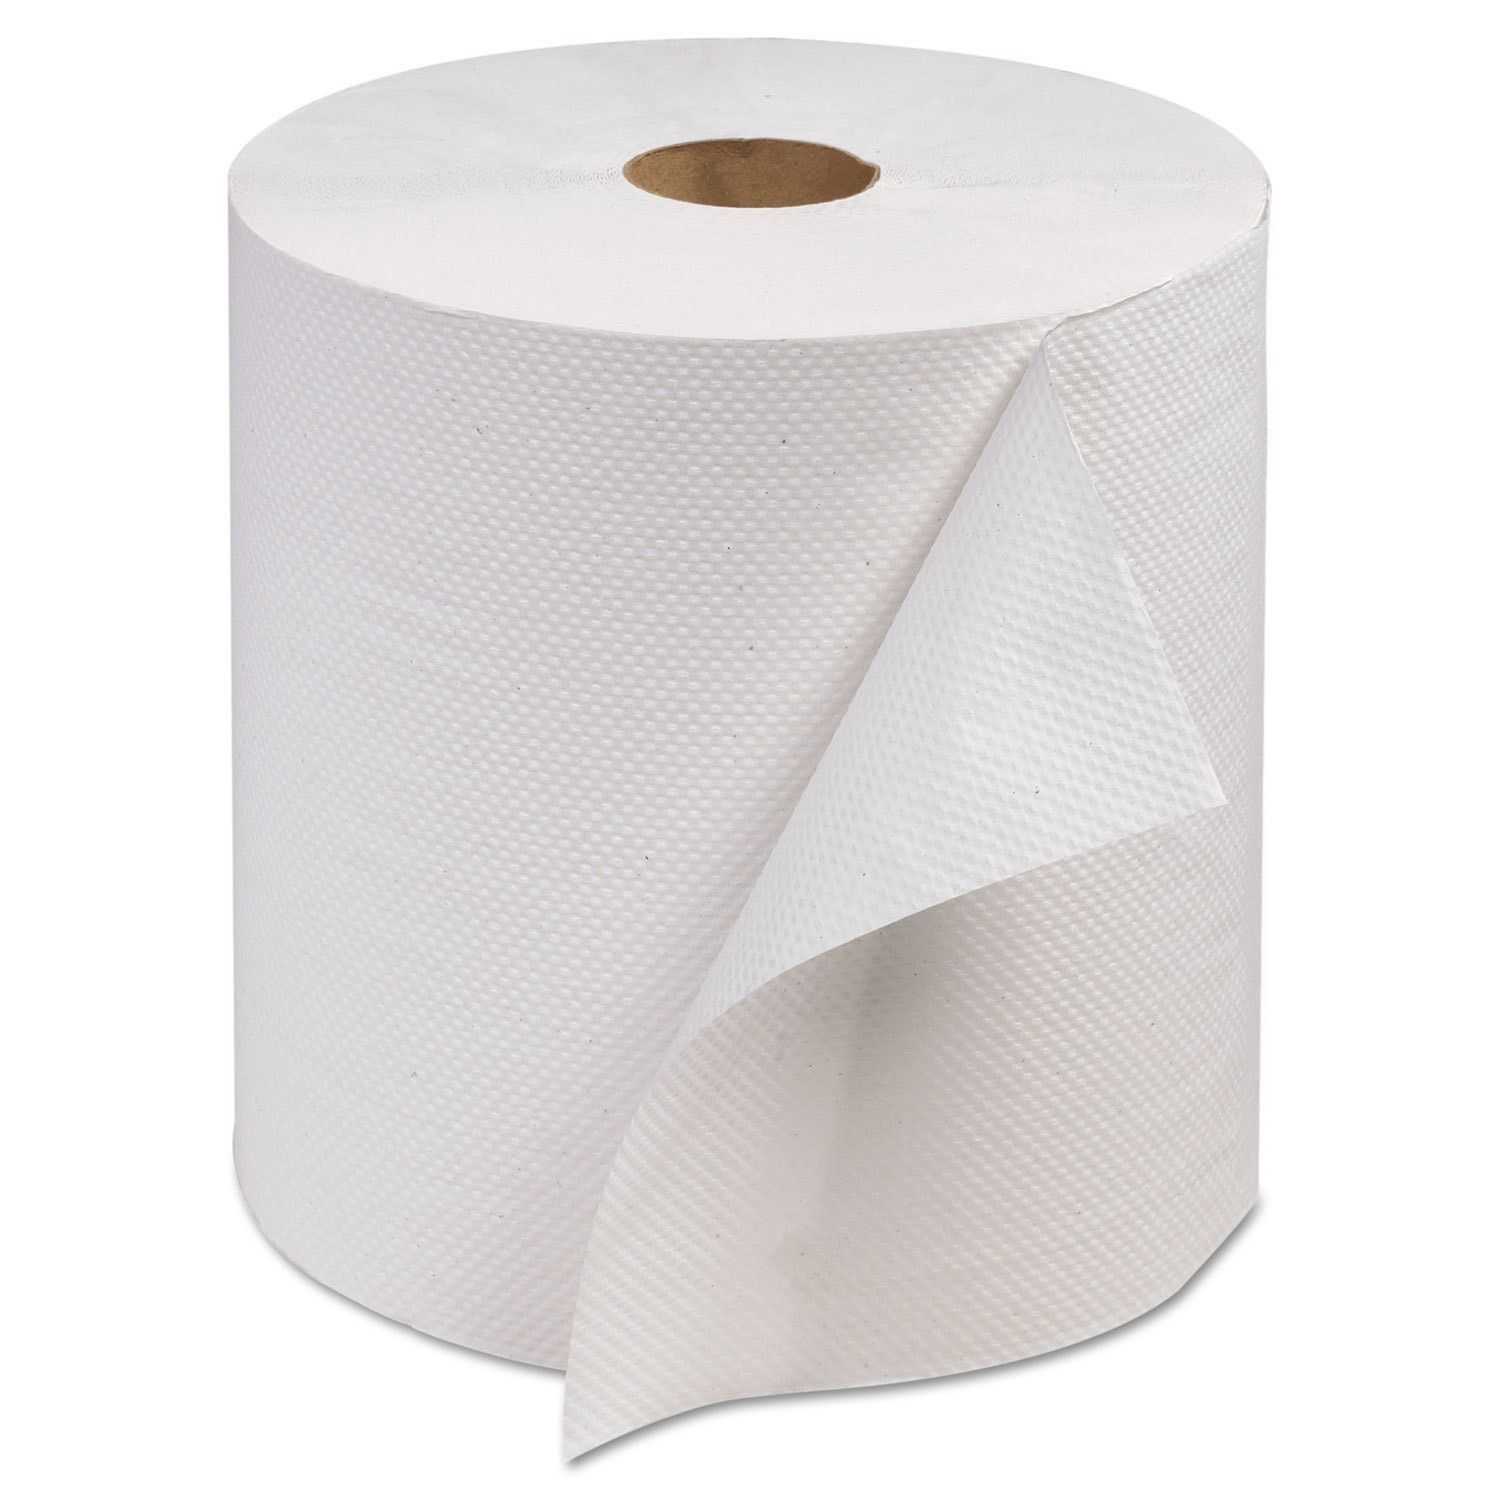 Tork Advanced Hand Roll Towel One Ply 7 9 10 Inch Wide X 800 Feet Long Products How To Roll Towels Hand Roll Paper